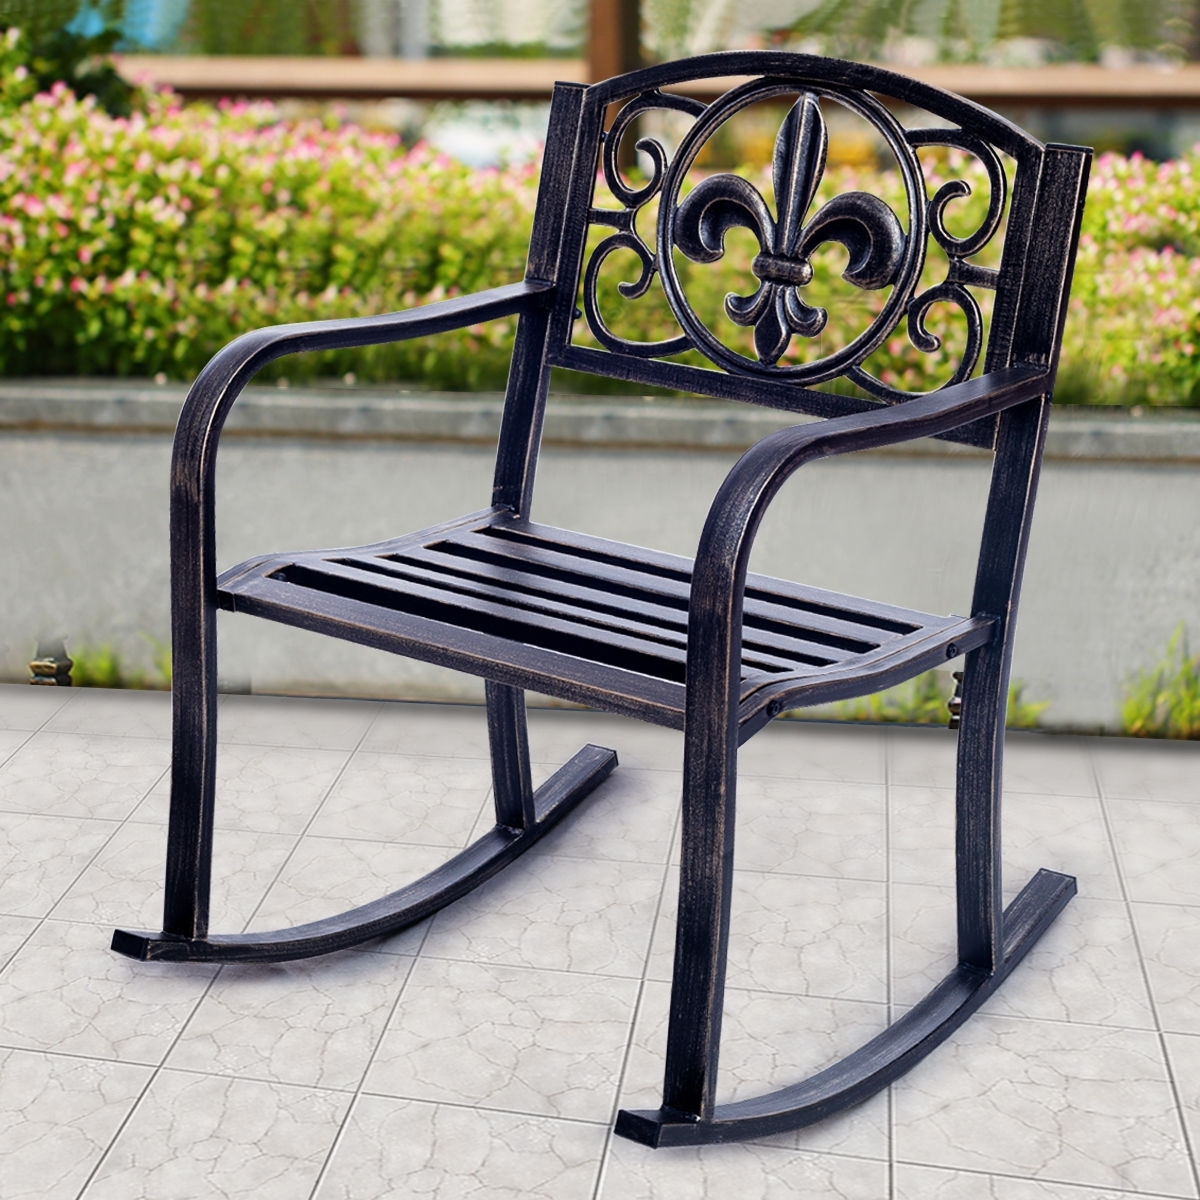 Famous Costway: Costway Patio Metal Rocking Chair Porch Seat Deck Outdoor Intended For Outdoor Patio Metal Rocking Chairs (View 1 of 15)